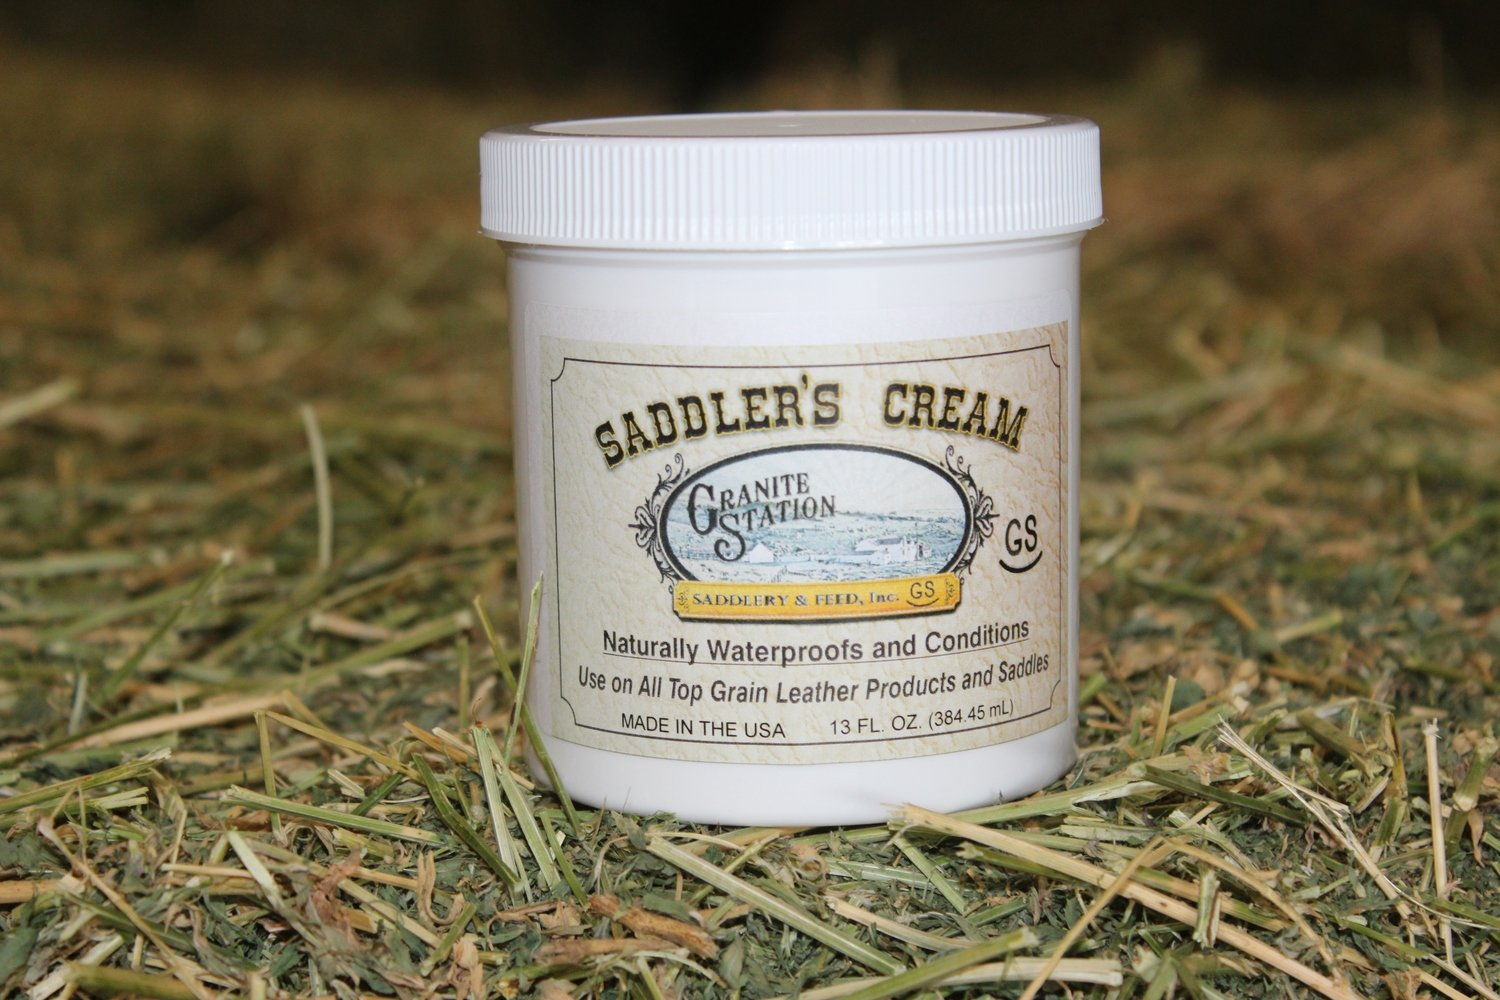 Saddler's Cream